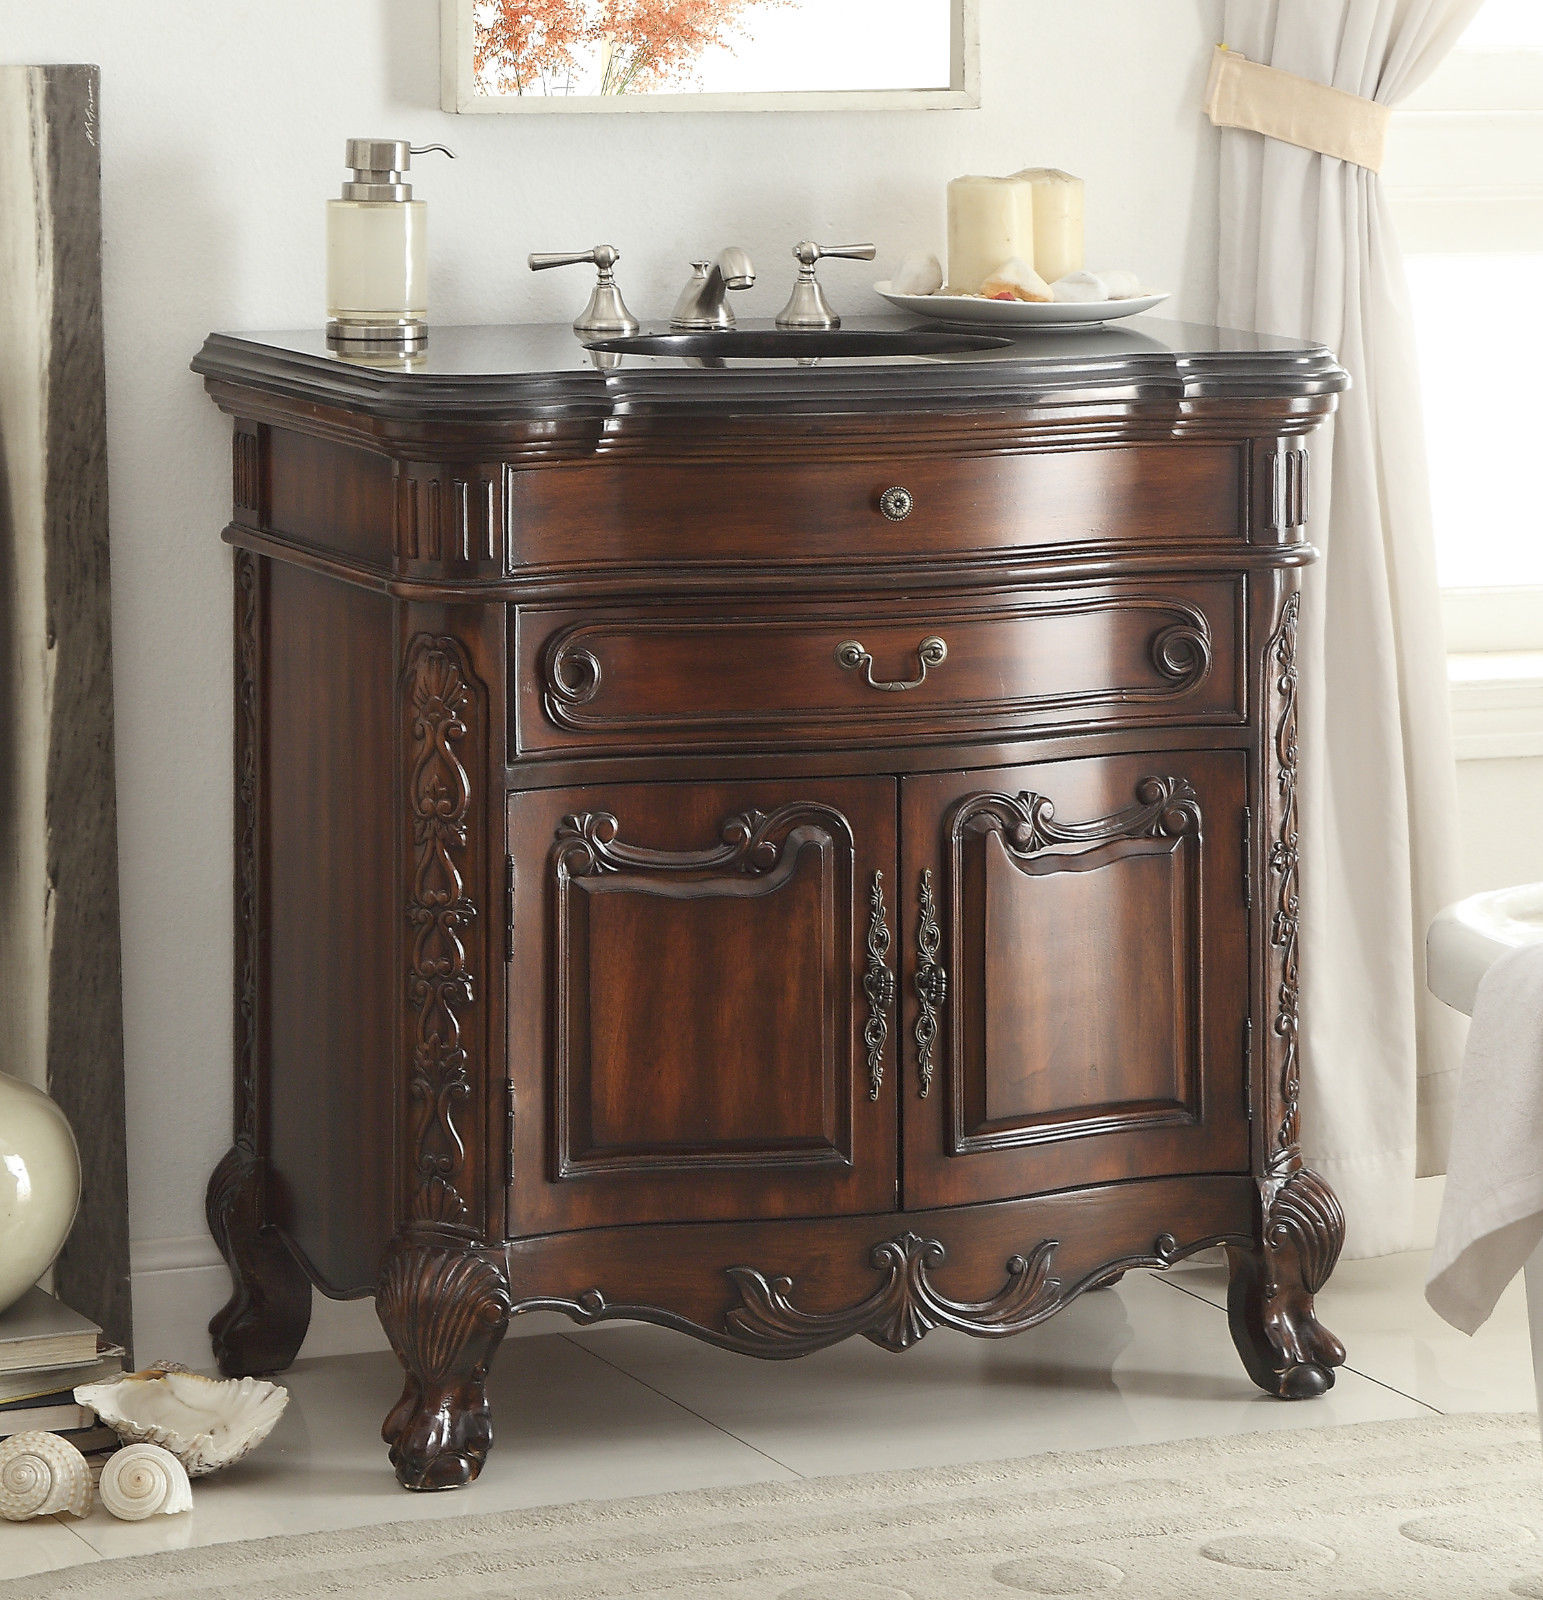 36 inch Adelina Antique Mahogany Bathroom Sink Vanity - 36 Inch Antique Mahogany Bathroom Sink Vanity